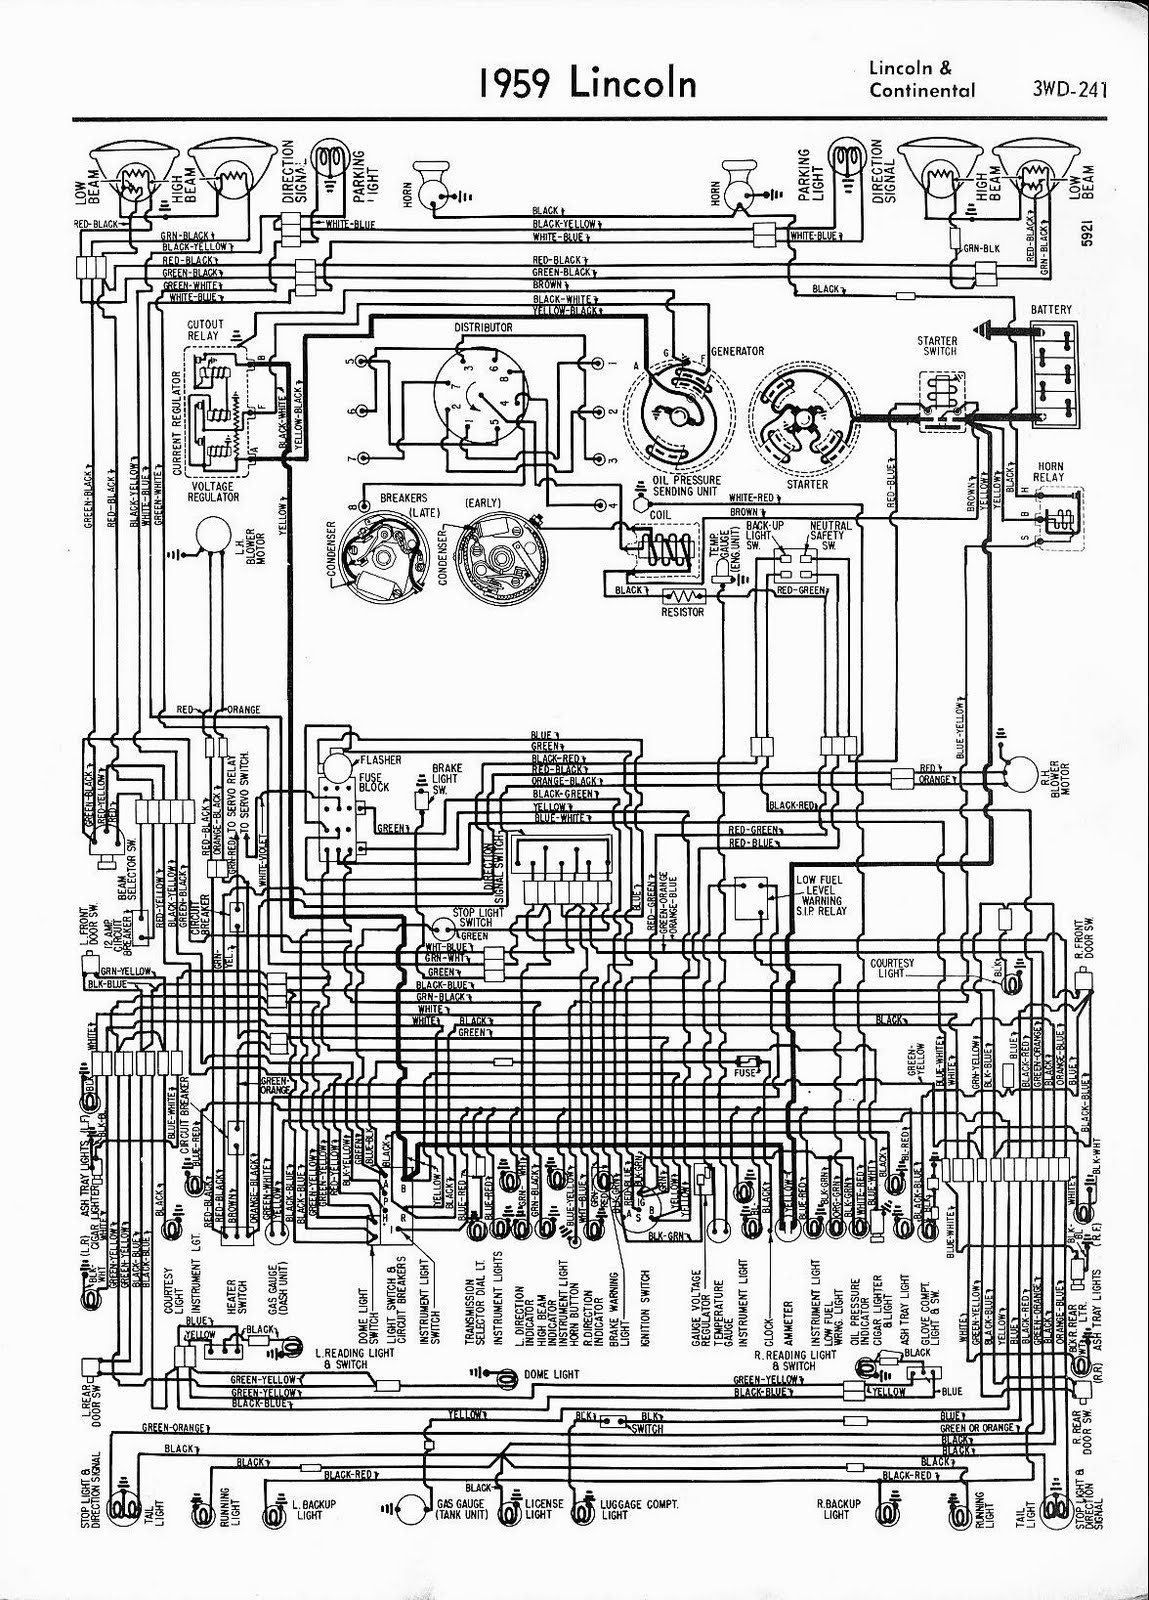 free auto wiring diagram 1959 lincoln continental wiring diagram. Black Bedroom Furniture Sets. Home Design Ideas